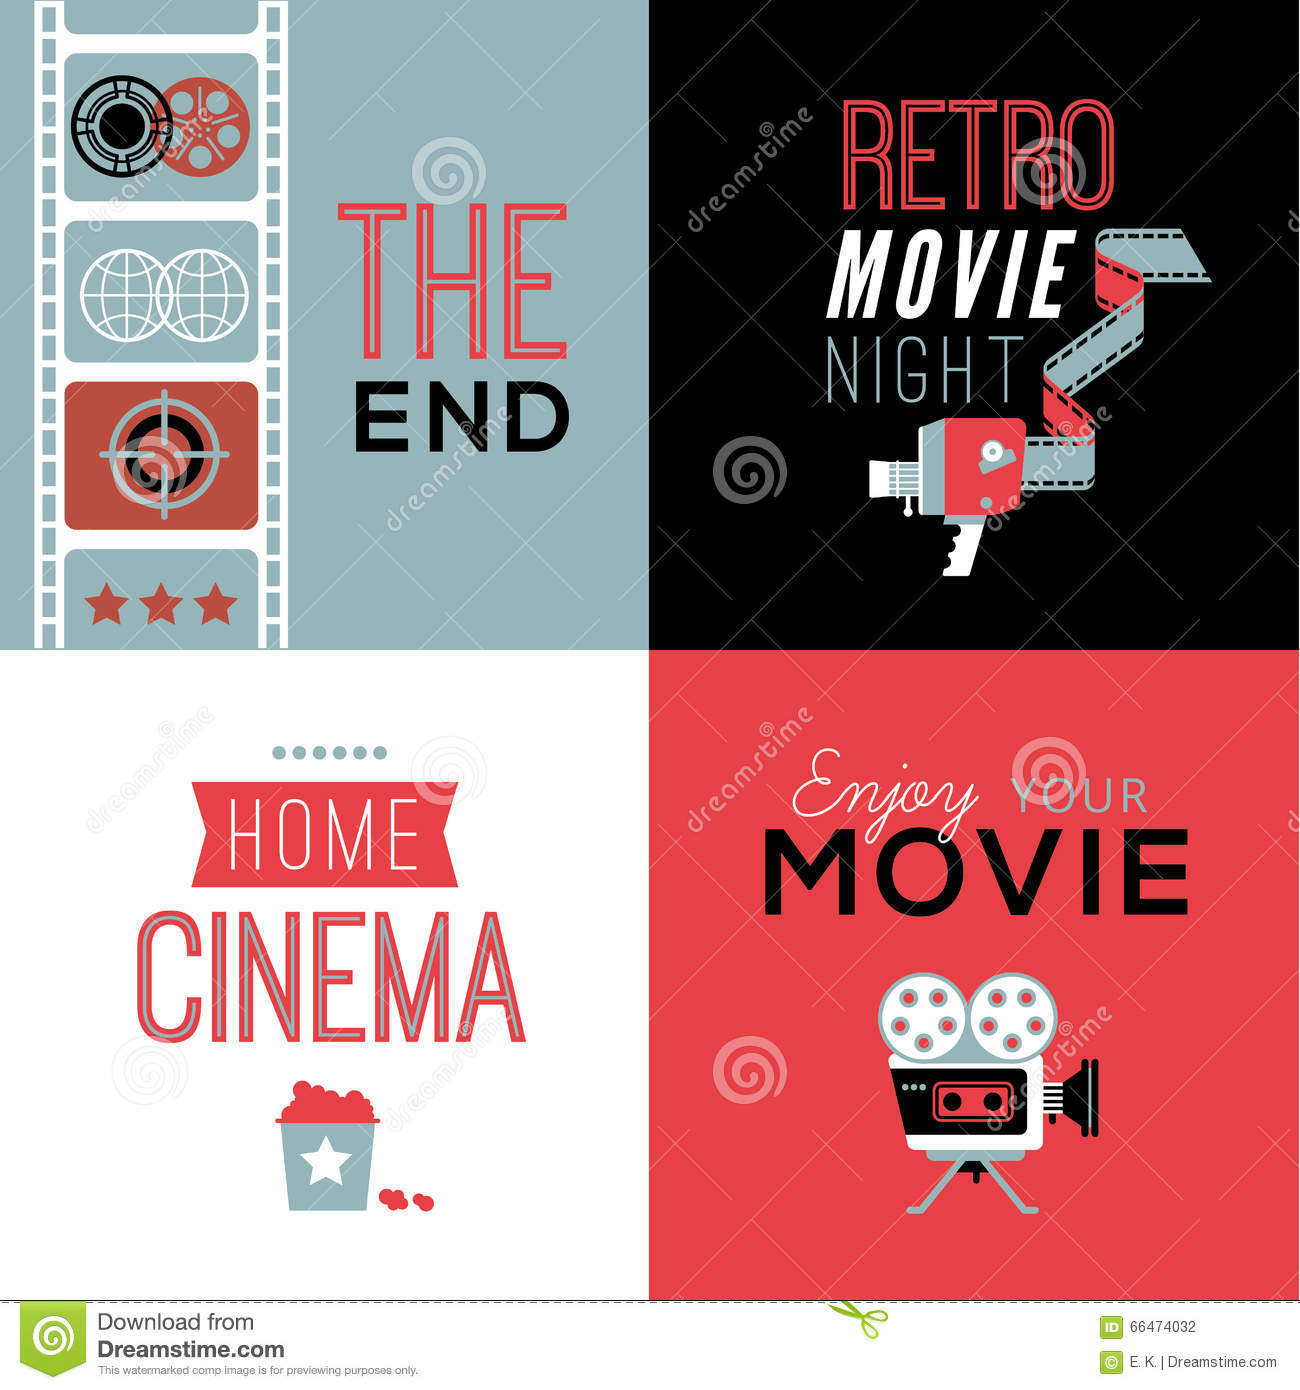 Cinema compositions with text